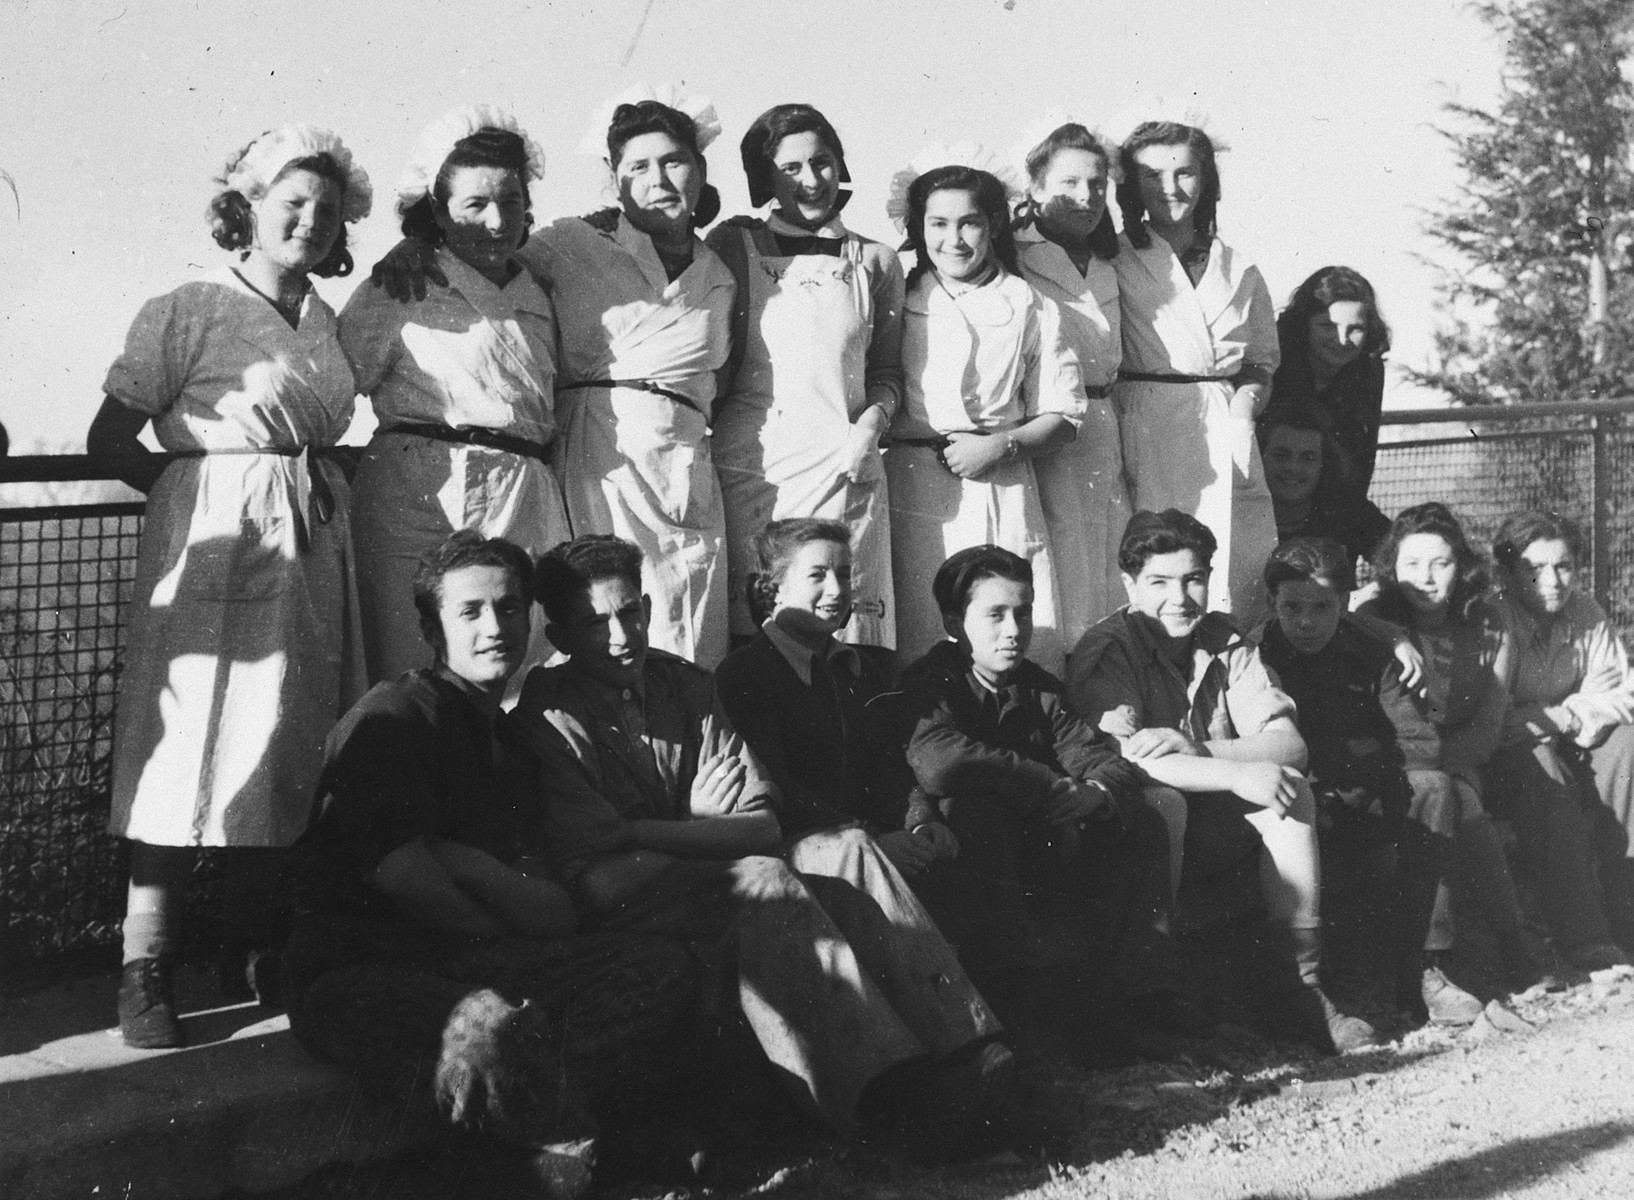 Group portrait of the kitchen staff and teenagers at the Selvino children's home.  The girls were issued special uniforms in honor of a visit by the AJDC.  Among those pictured (bottom row, middle) is Esther Goldman who was working in the kitchen.